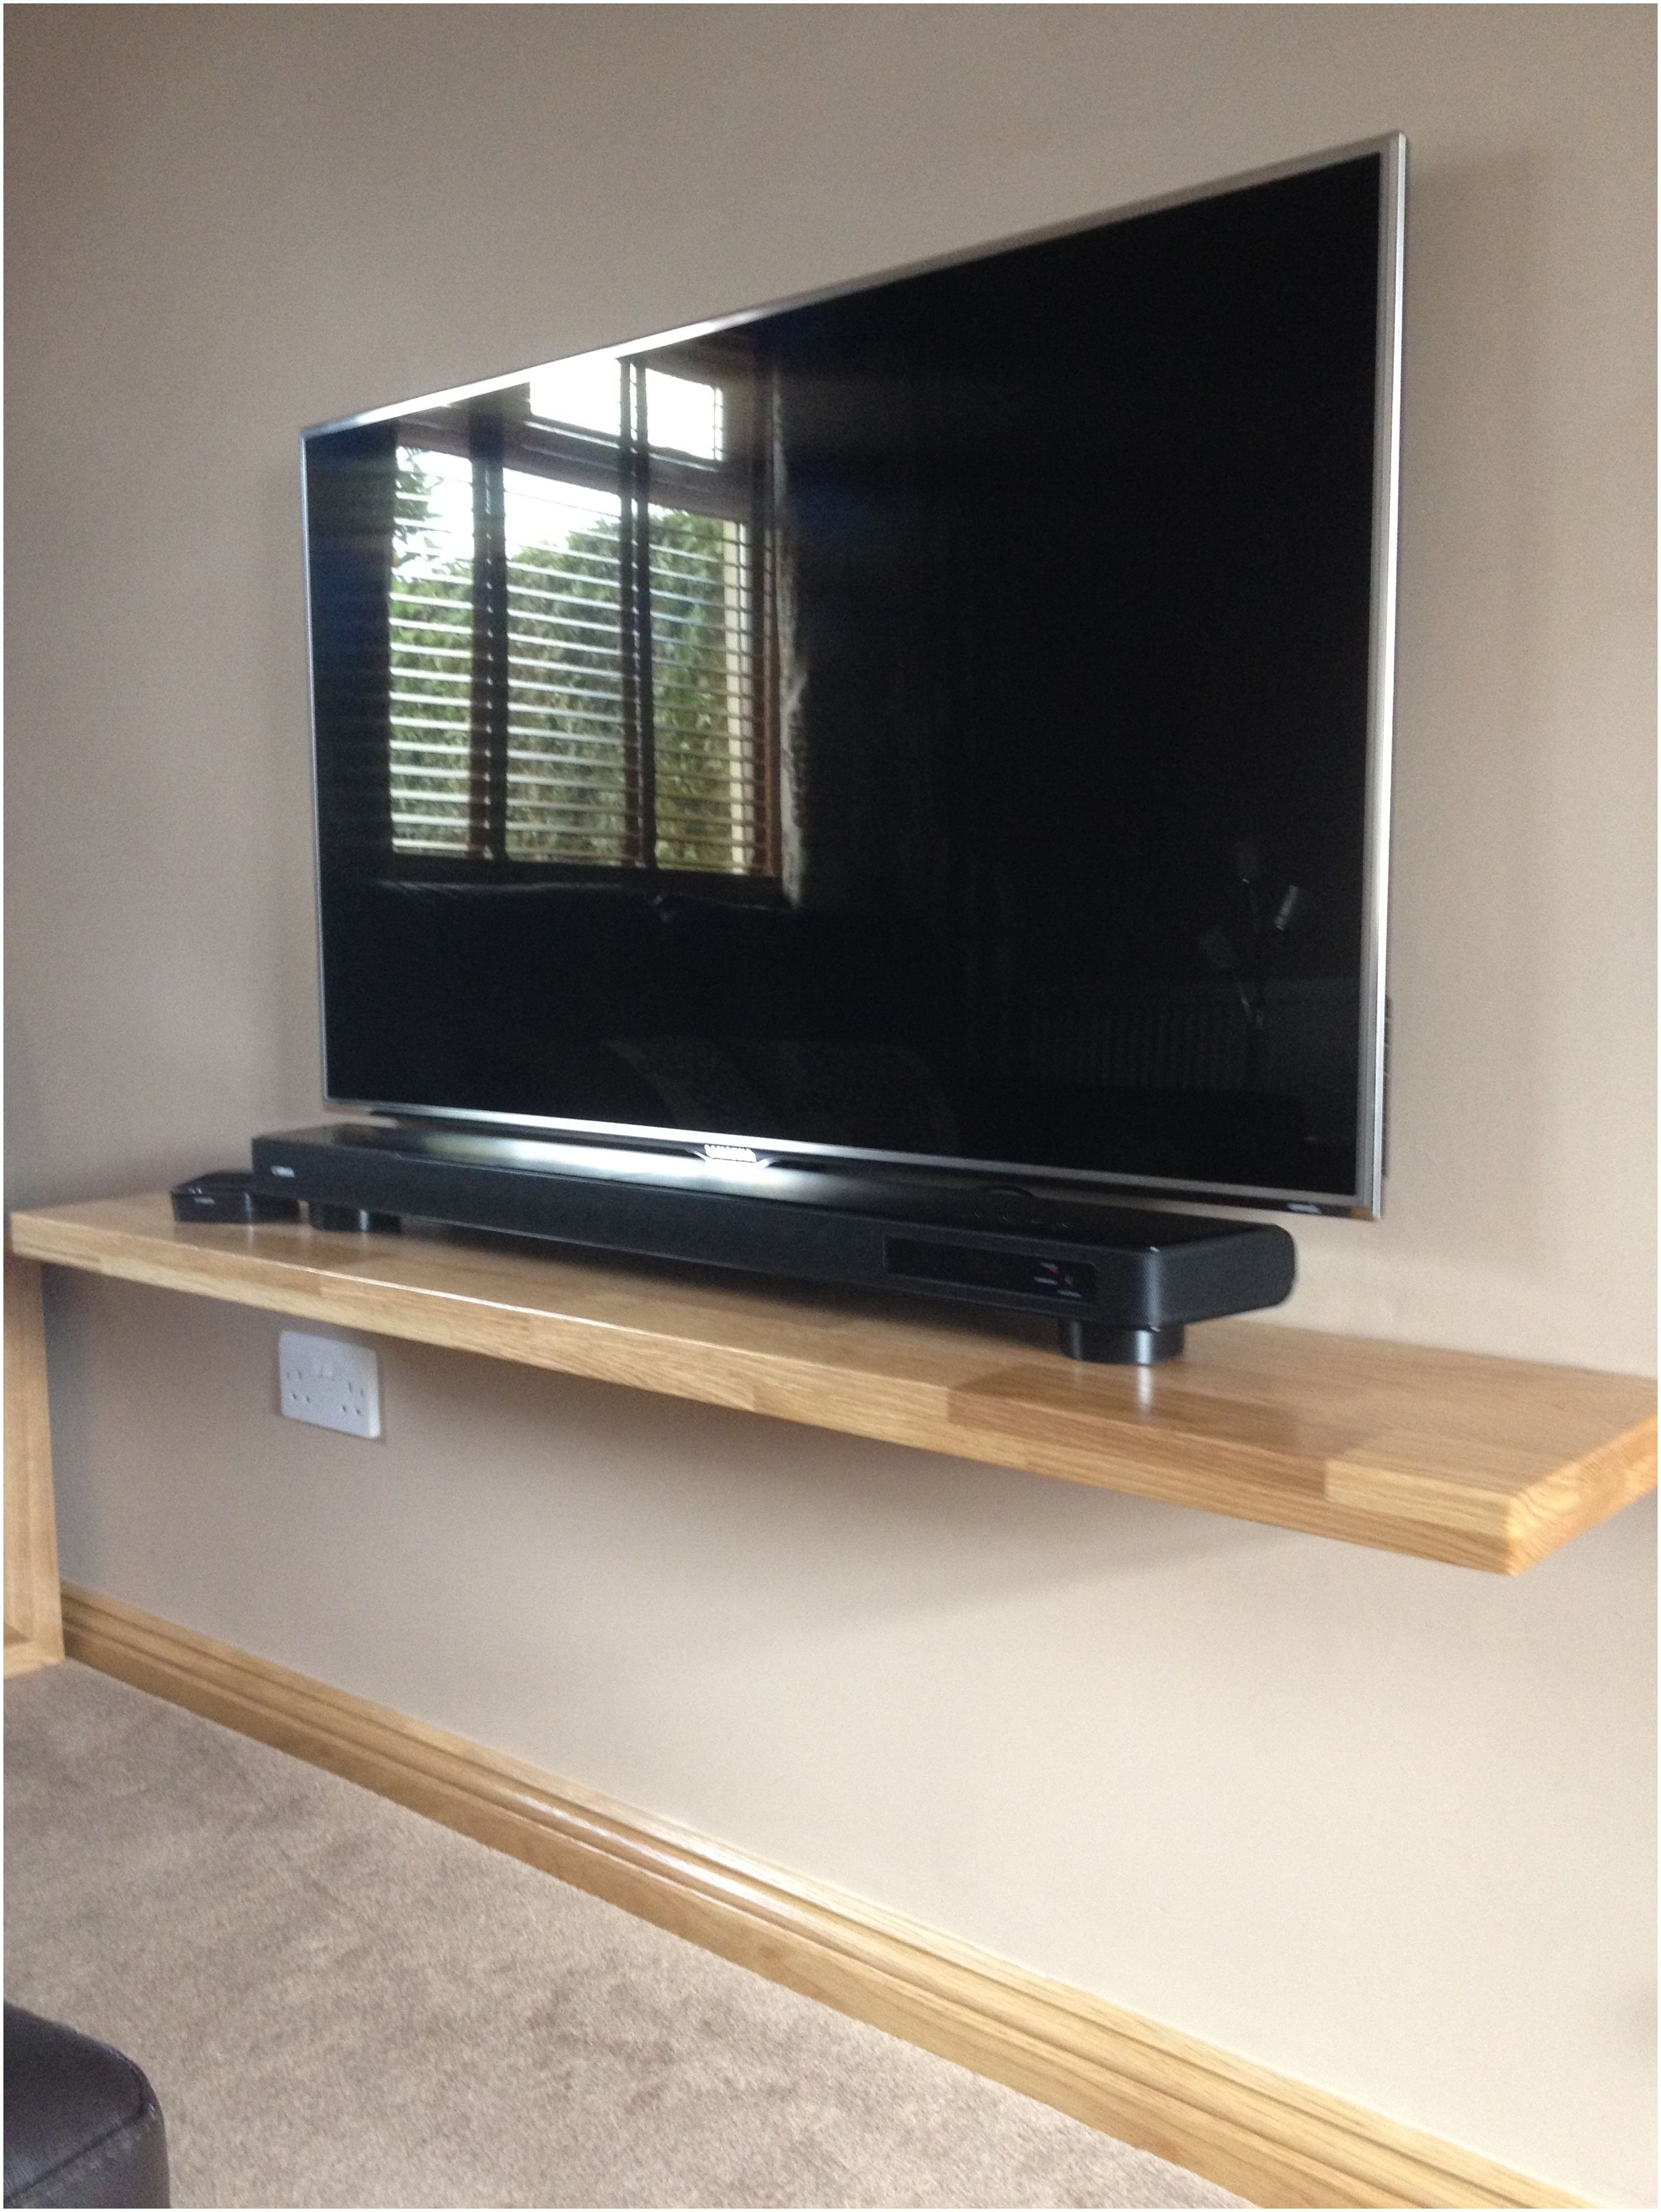 Shelf Ideas For Under Wall Mounted Tv Tv Wall Shelves Wall Mount Tv Shelf Shelves Under Tv